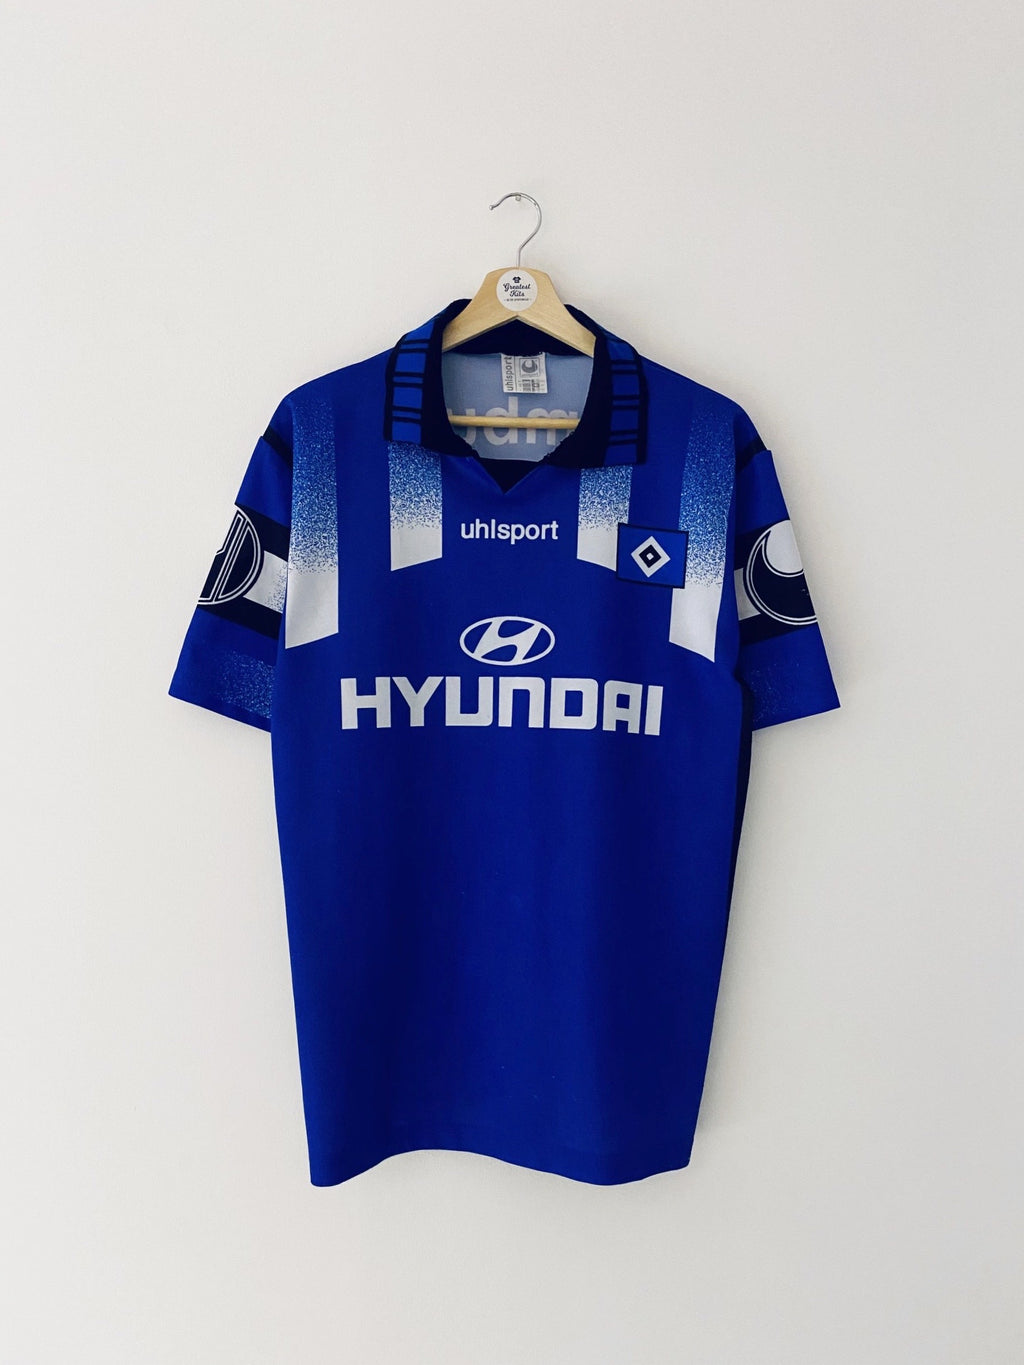 1995/96 Hamburg Away Shirt (L) 7.5/10